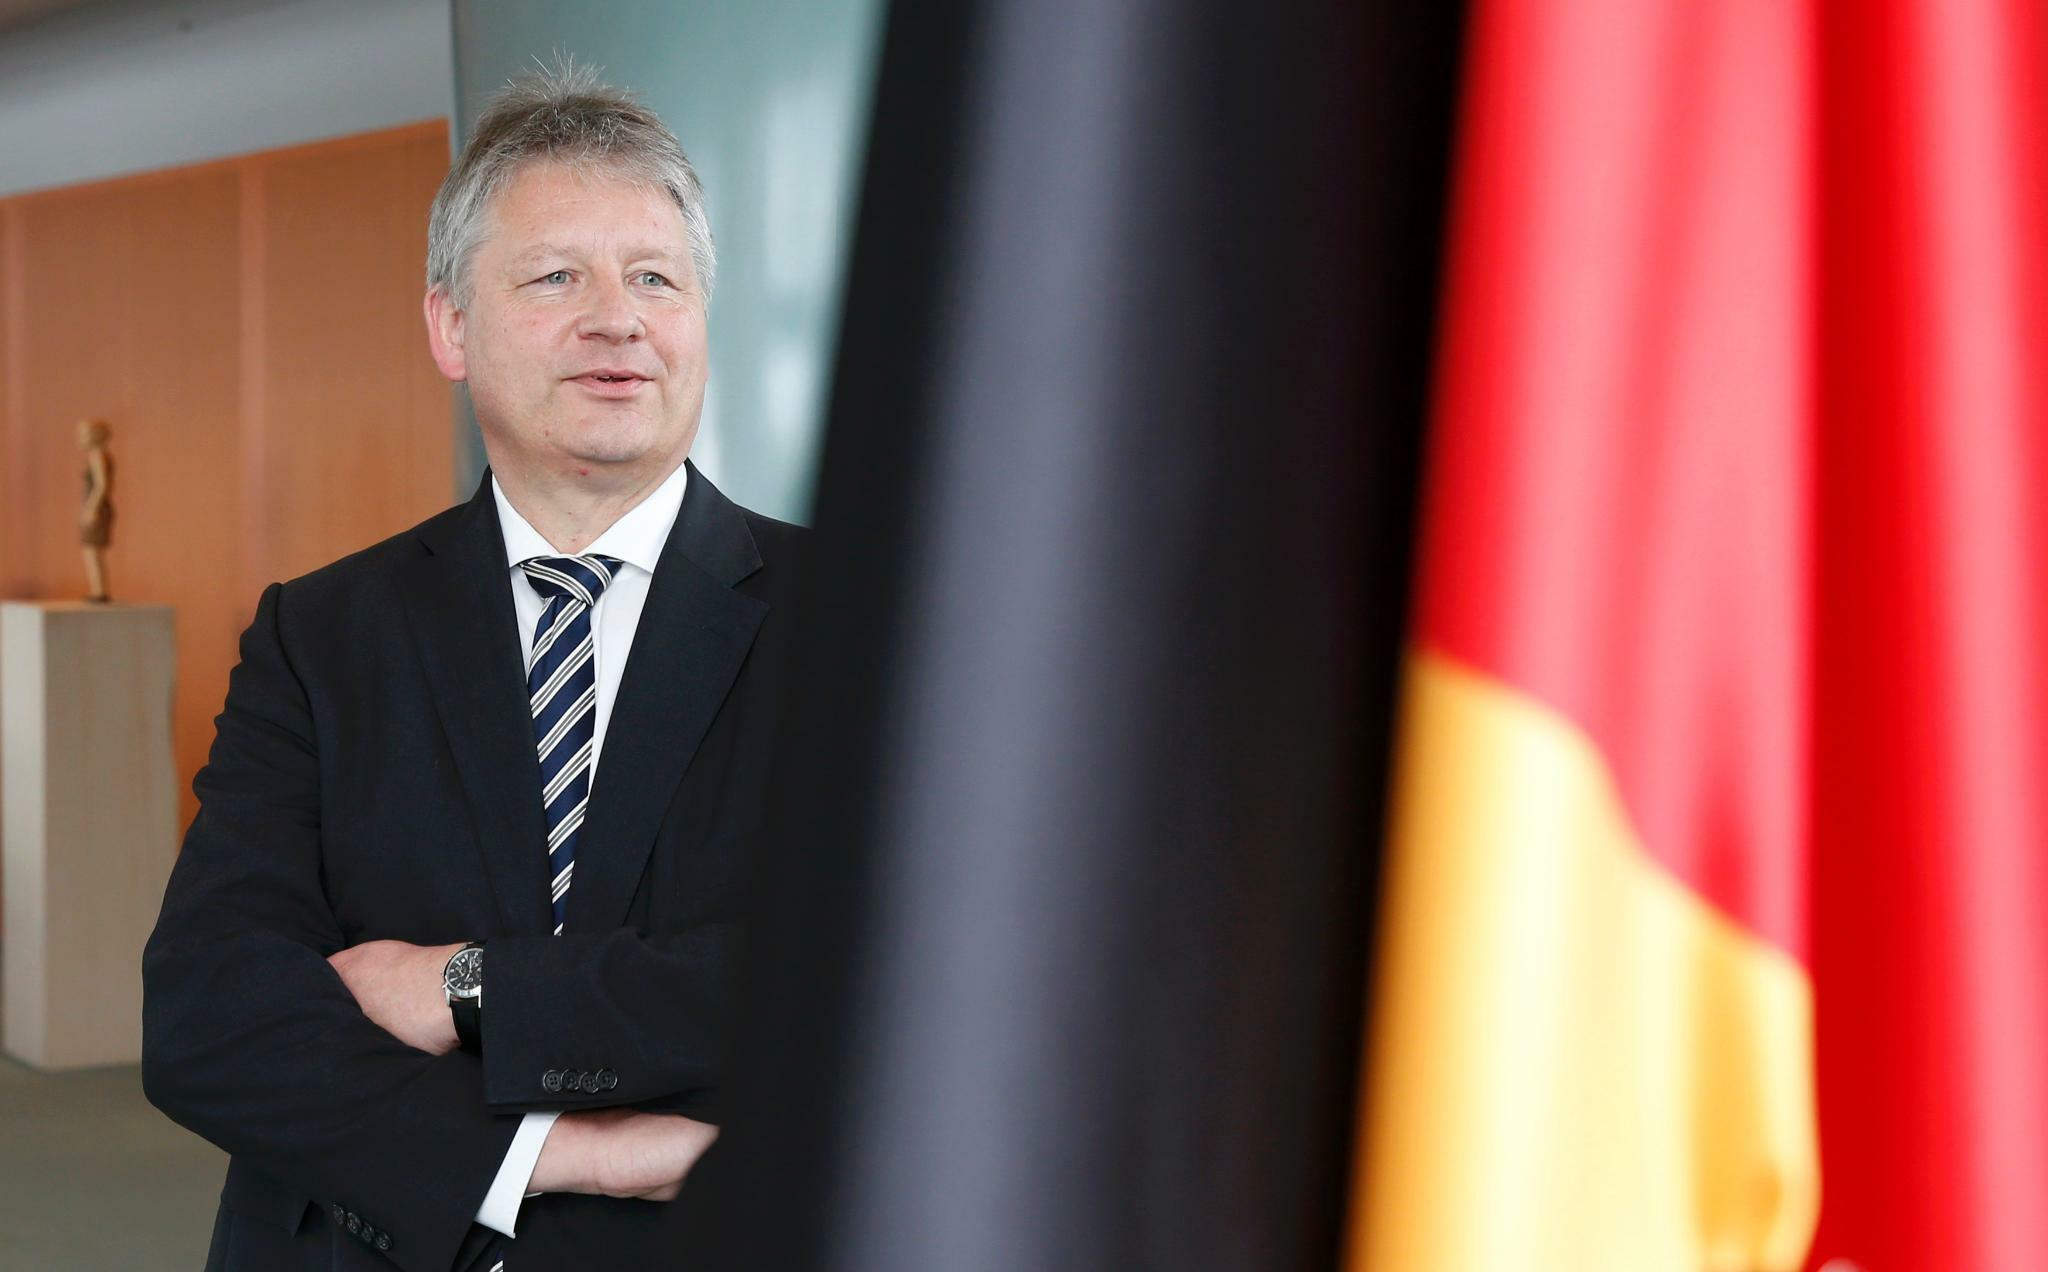 http://www.tagesspiegel.de/images/kahl-designated-new-president-of-the-german-federal-intelligence-agency-bnd-poses-for-a-picture-at-the-chancellery-in-berlin/13509756/1-format43.jpg